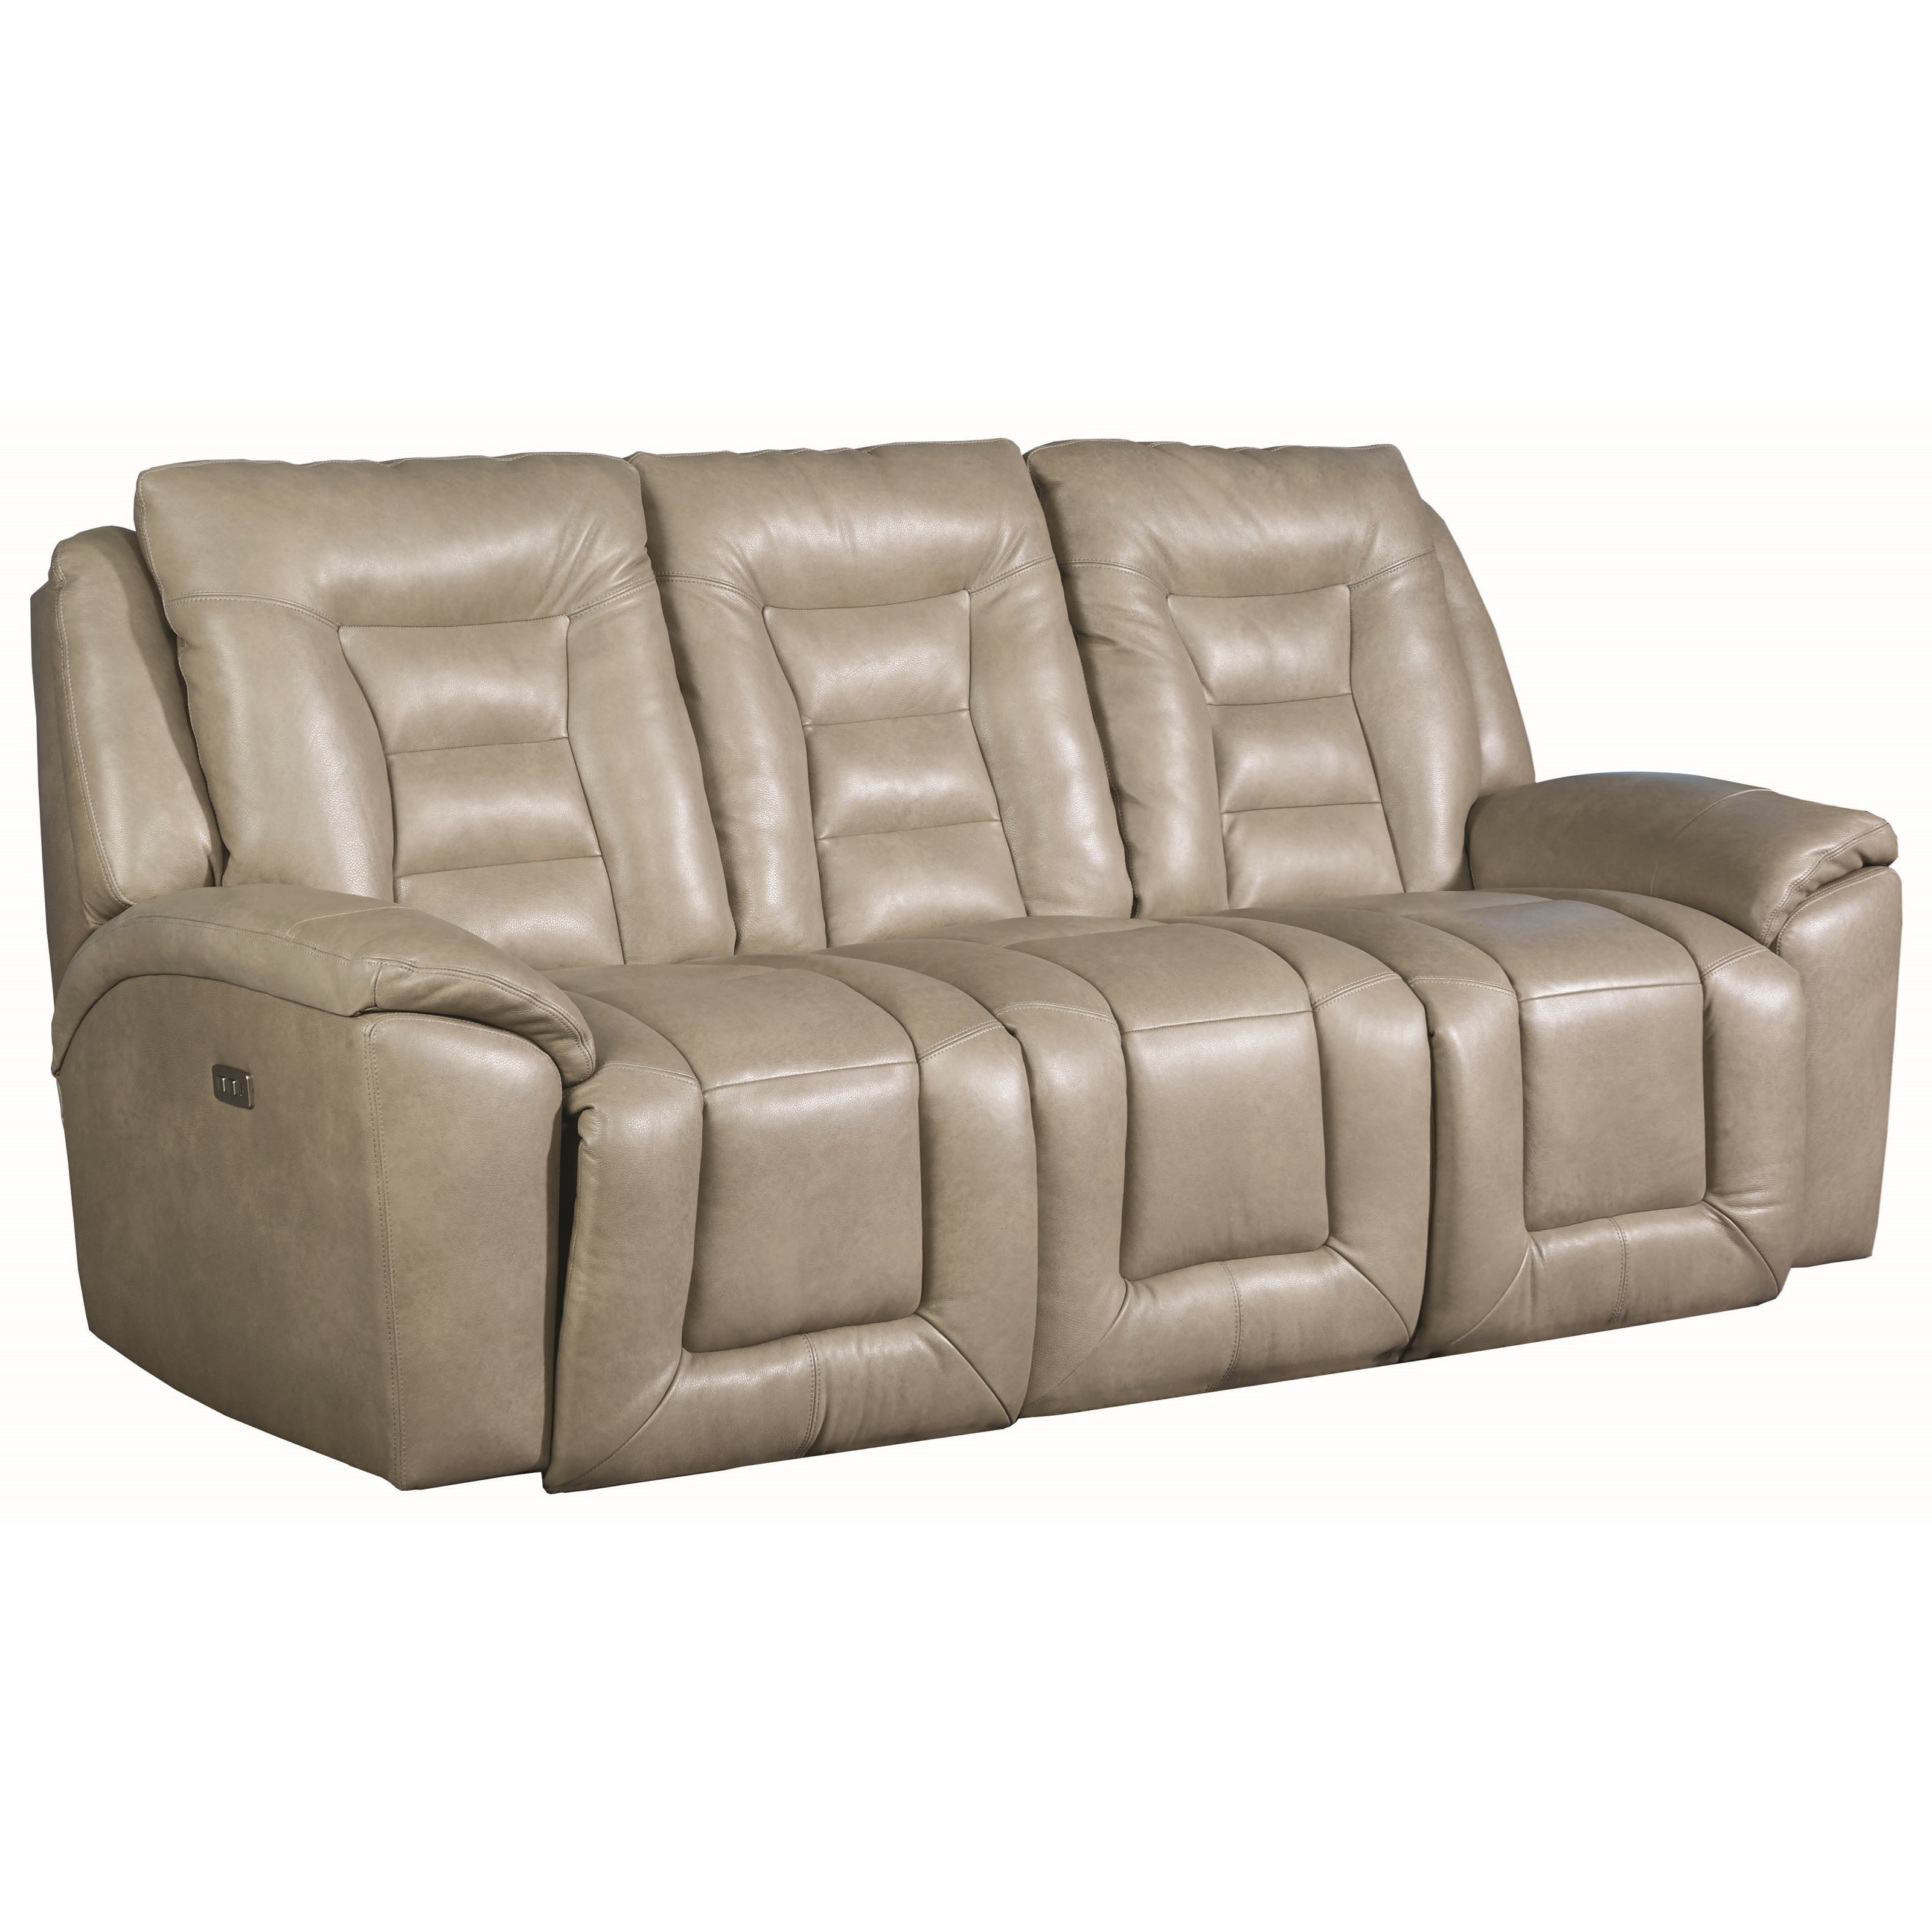 Grid Iron Power Headrest Reclining Sofa by Southern Motion at Sparks HomeStore